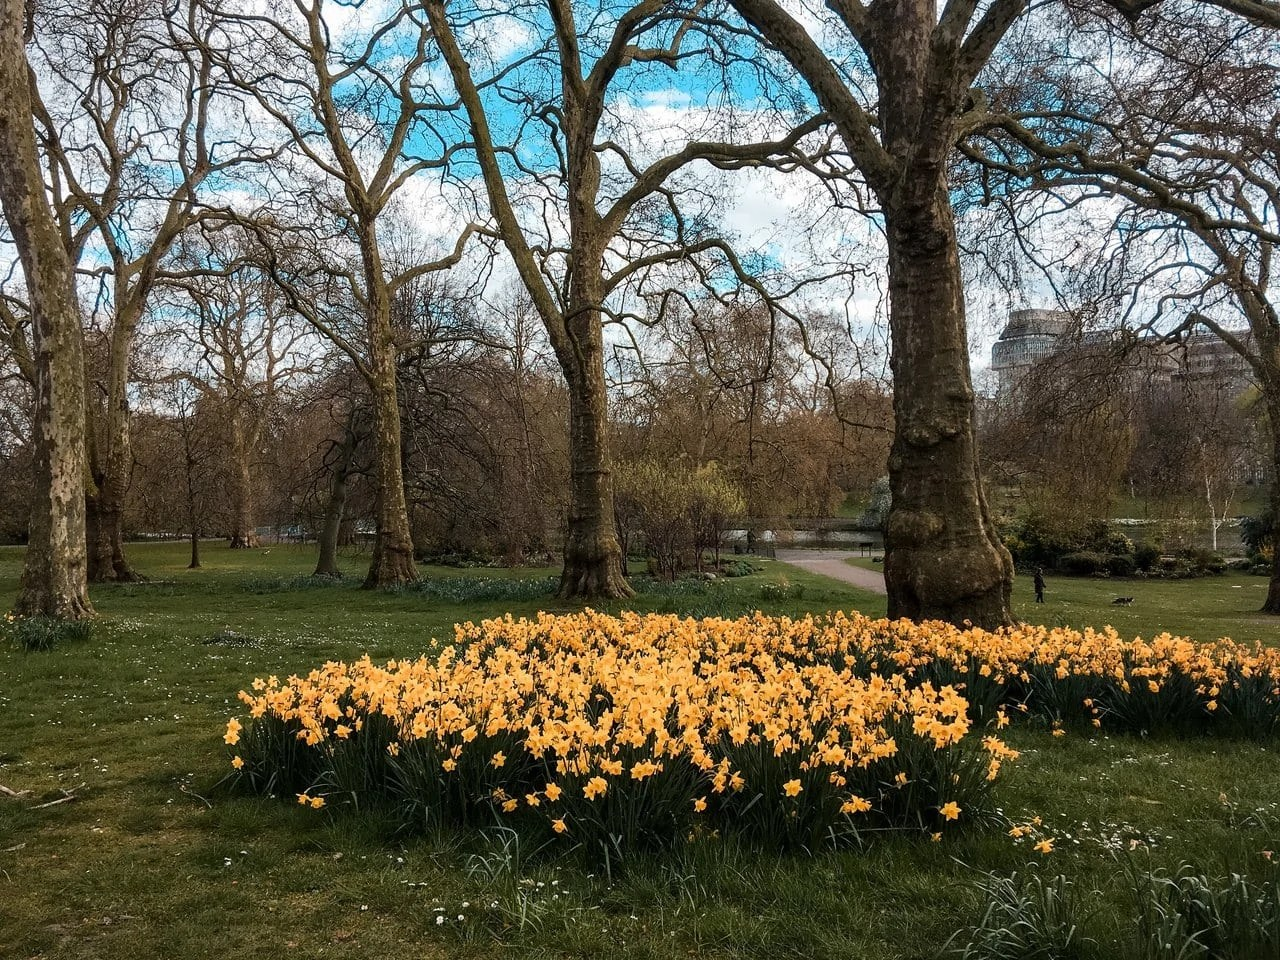 Daffodils in St James' Park, London, England